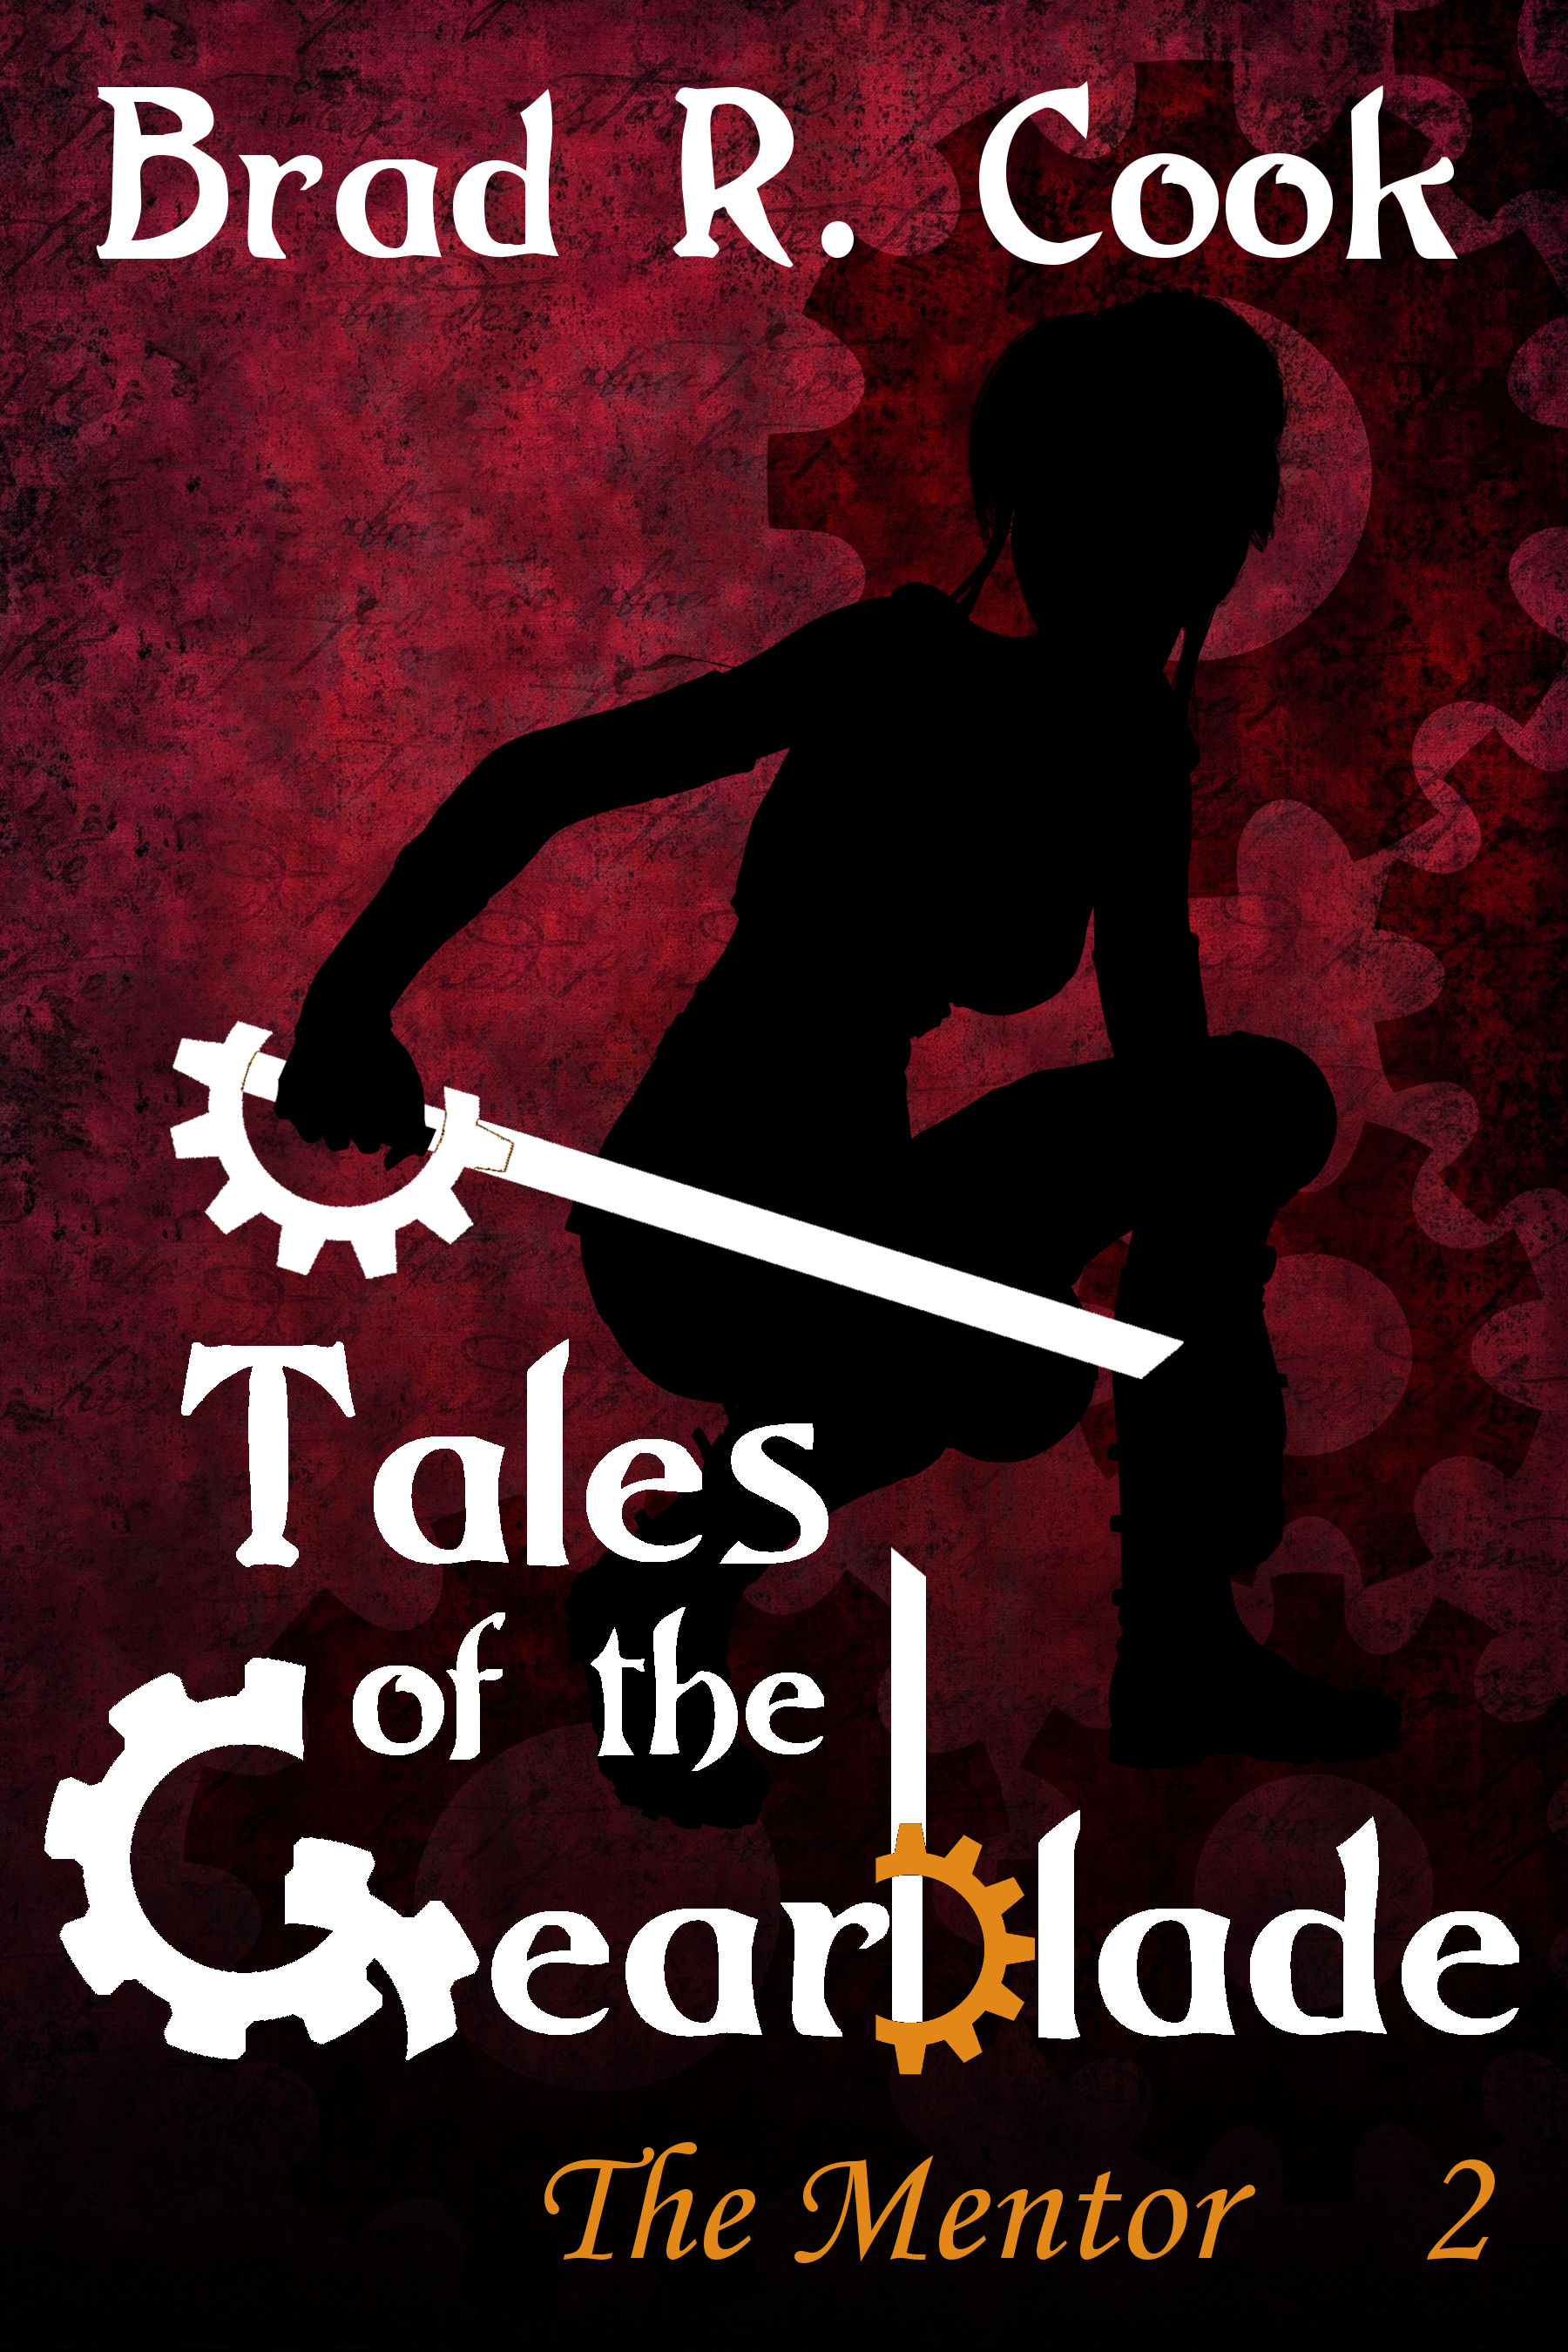 Tales of the Gearblade Cover 2 The Mentor.jpg